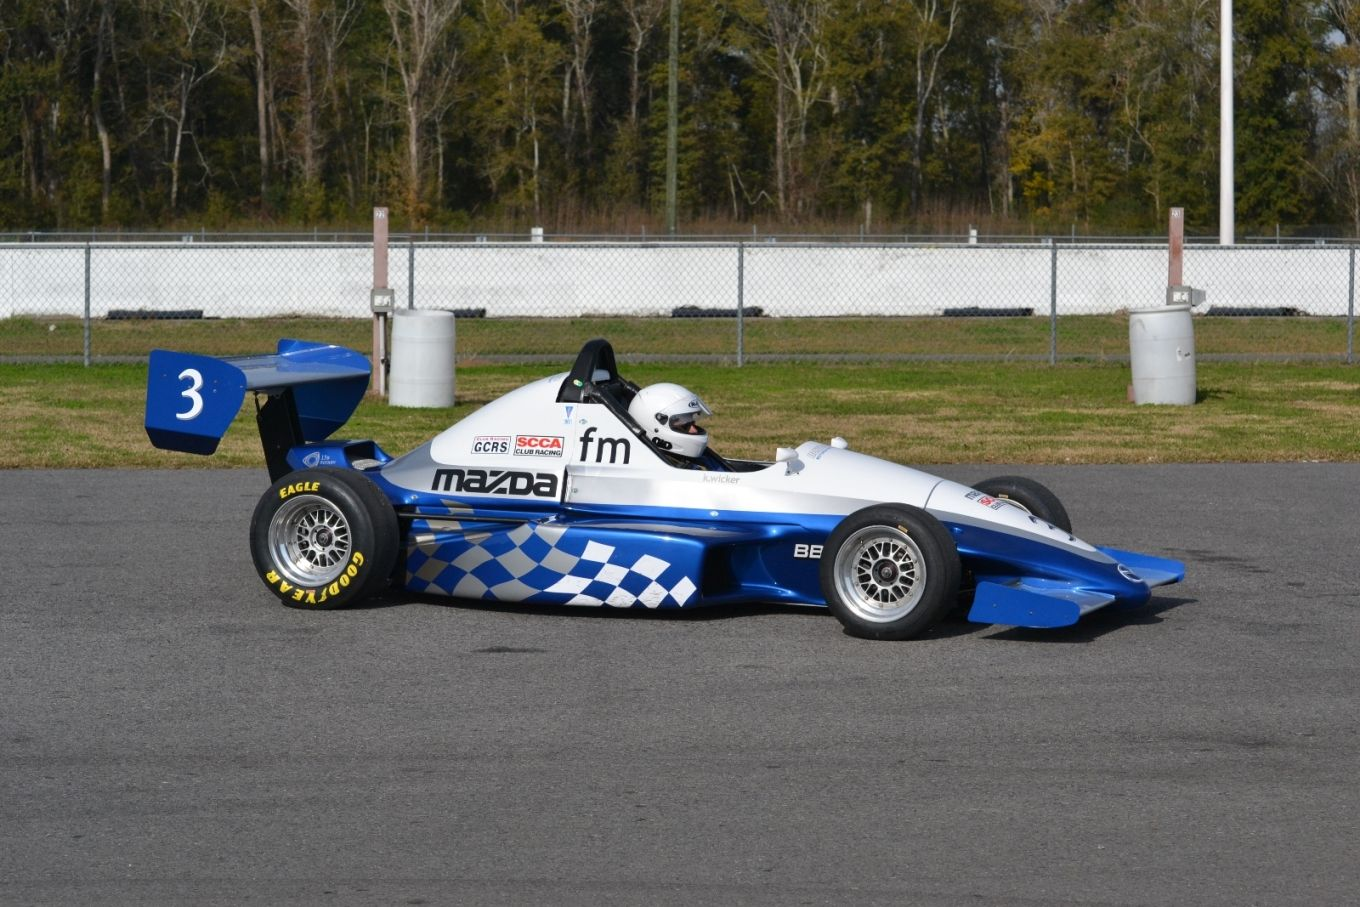 own and race an open wheel formula mazda car